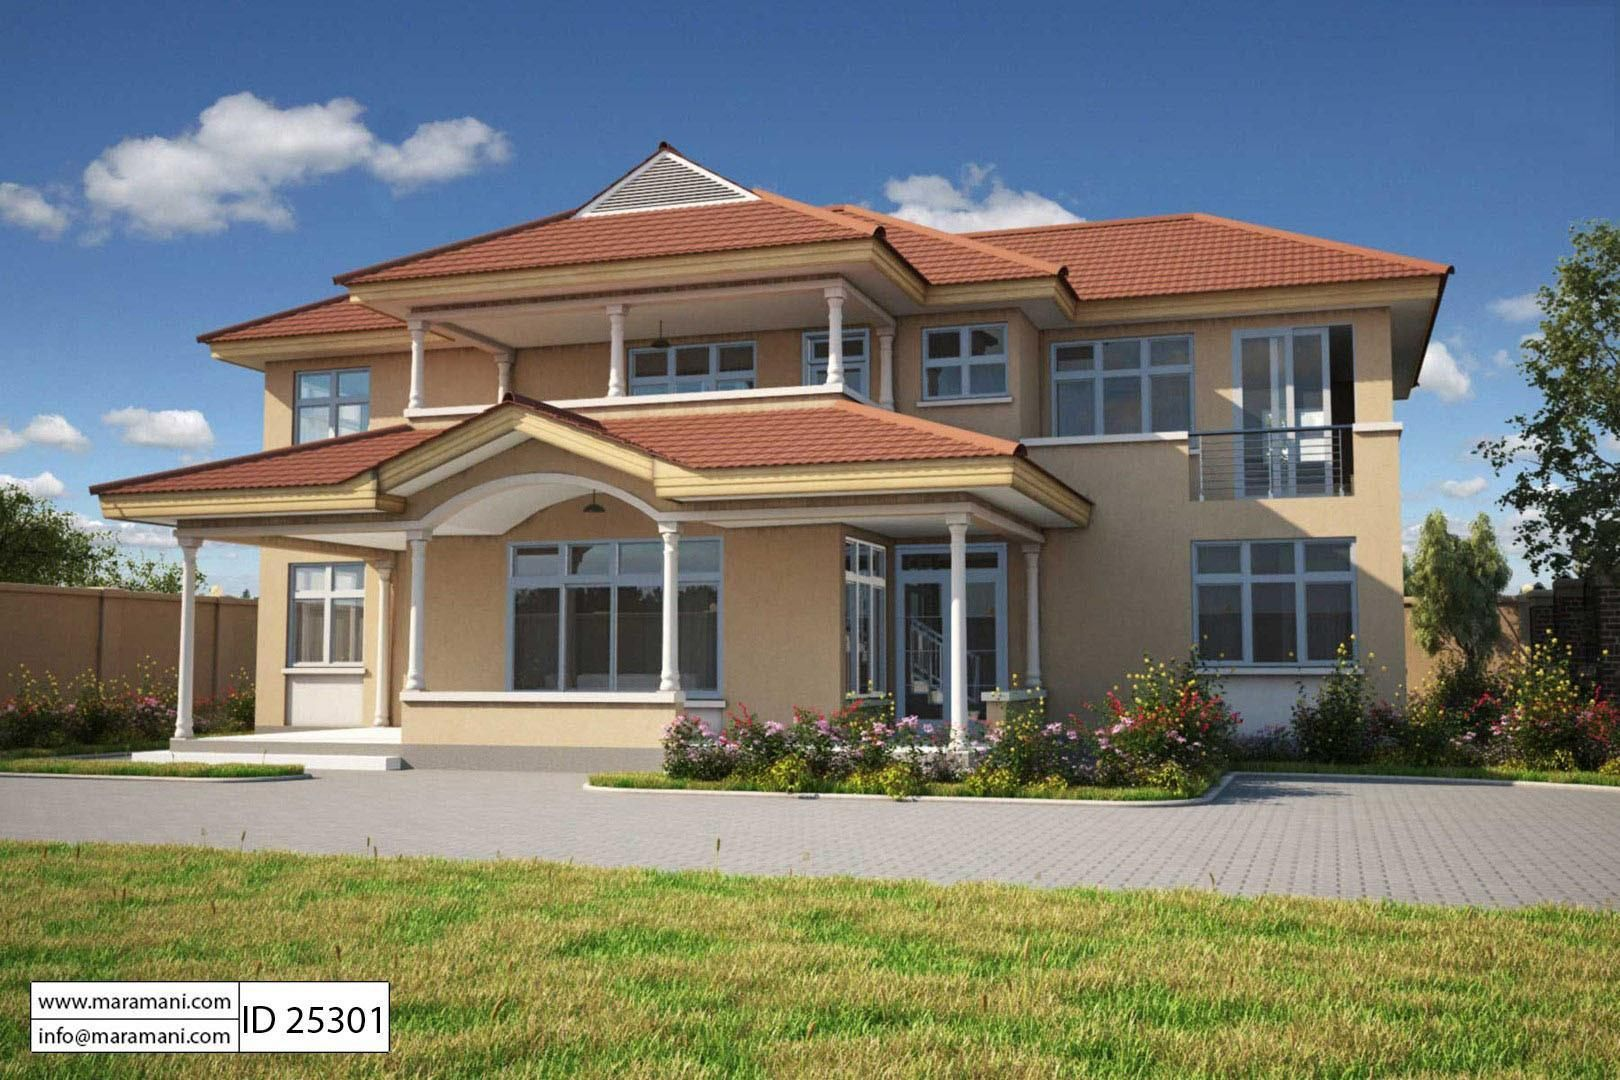 5 Bedroom House Plan 2 Story Id 25301 House Plans